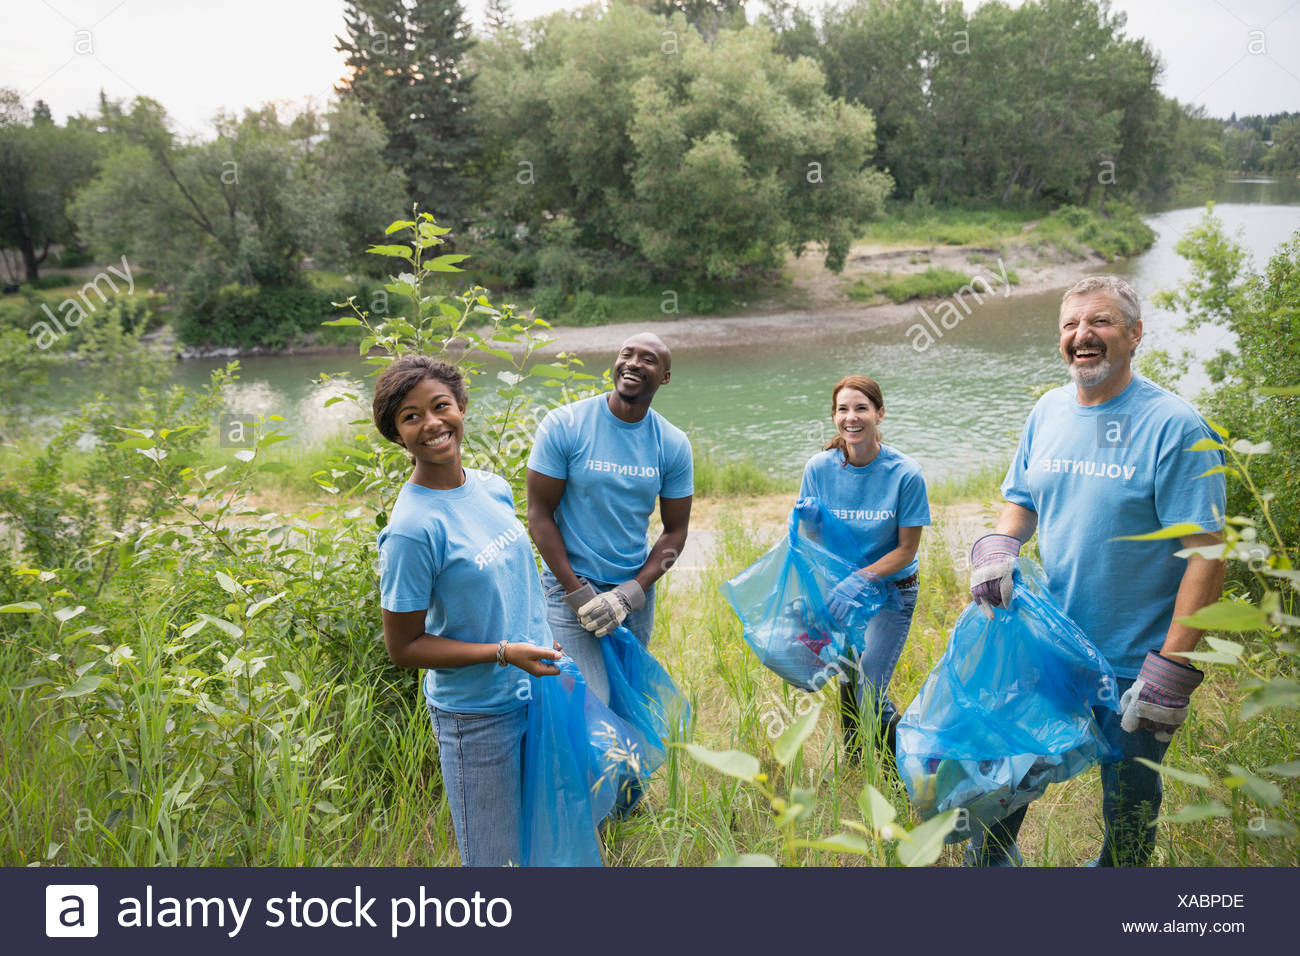 Portrait of smiling volunteers with garbage bags - Stock Image